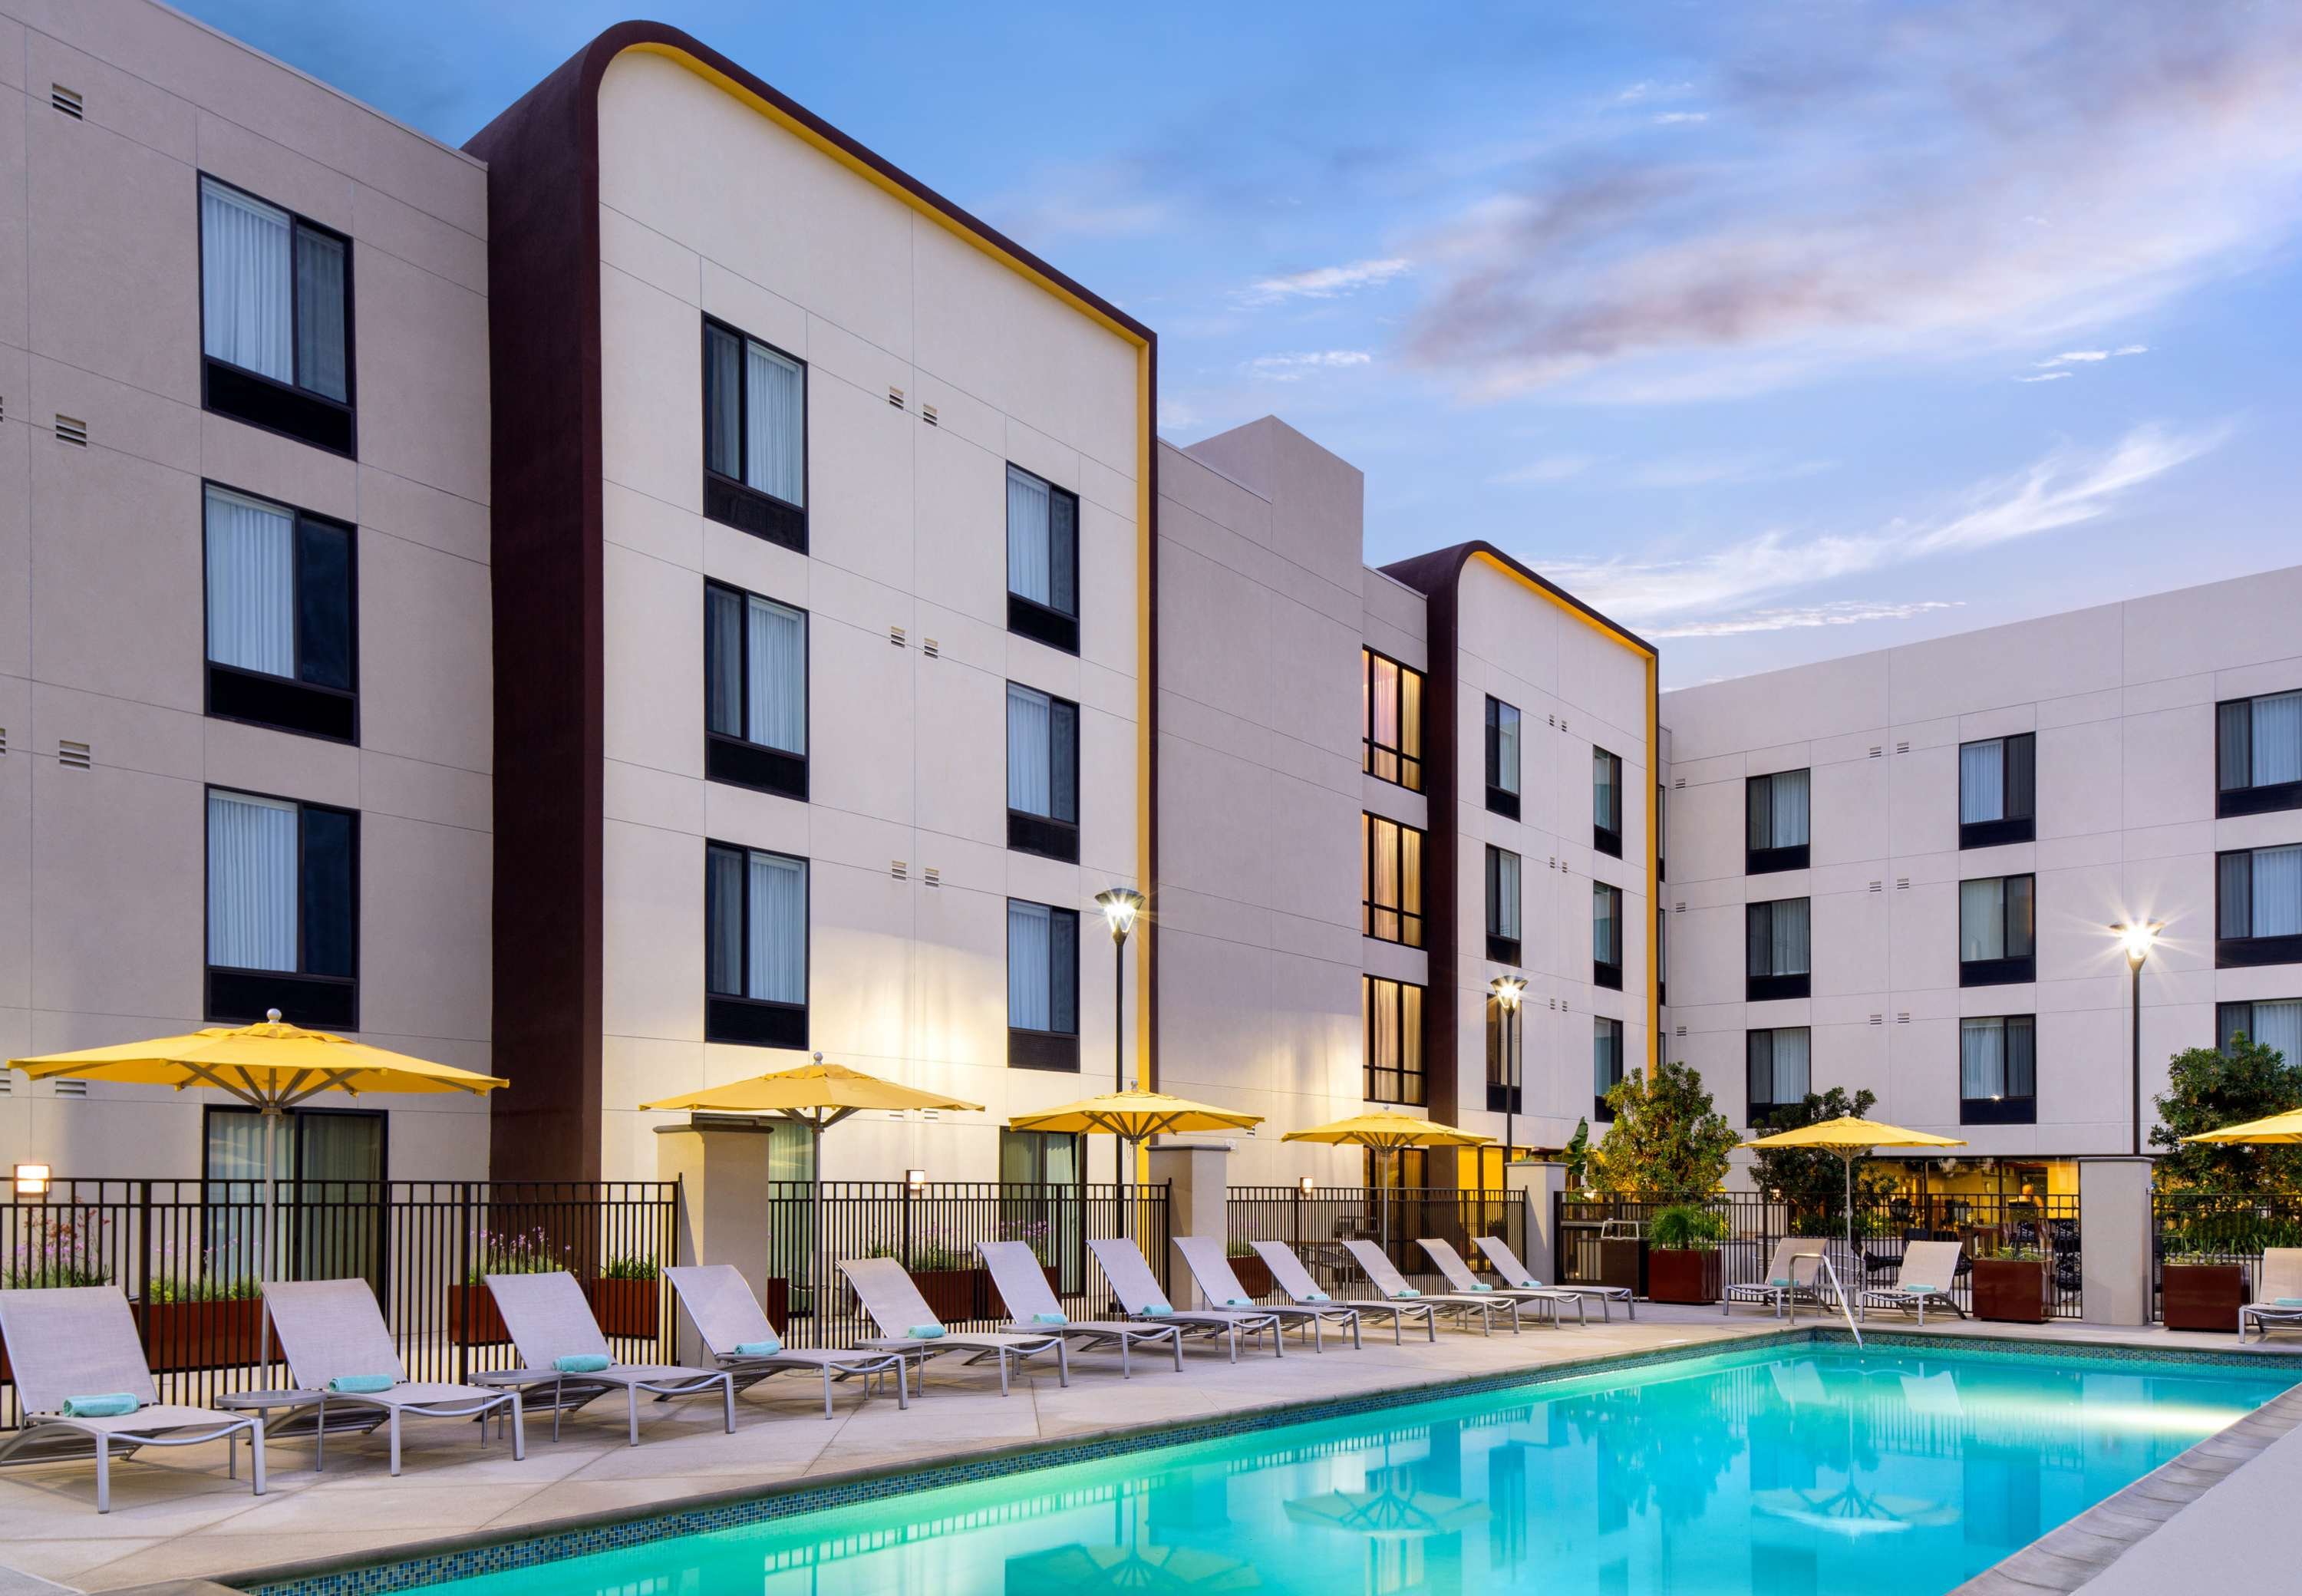 Springhill suites by marriott los angeles burbank downtown - Olive garden spring hill tennessee ...